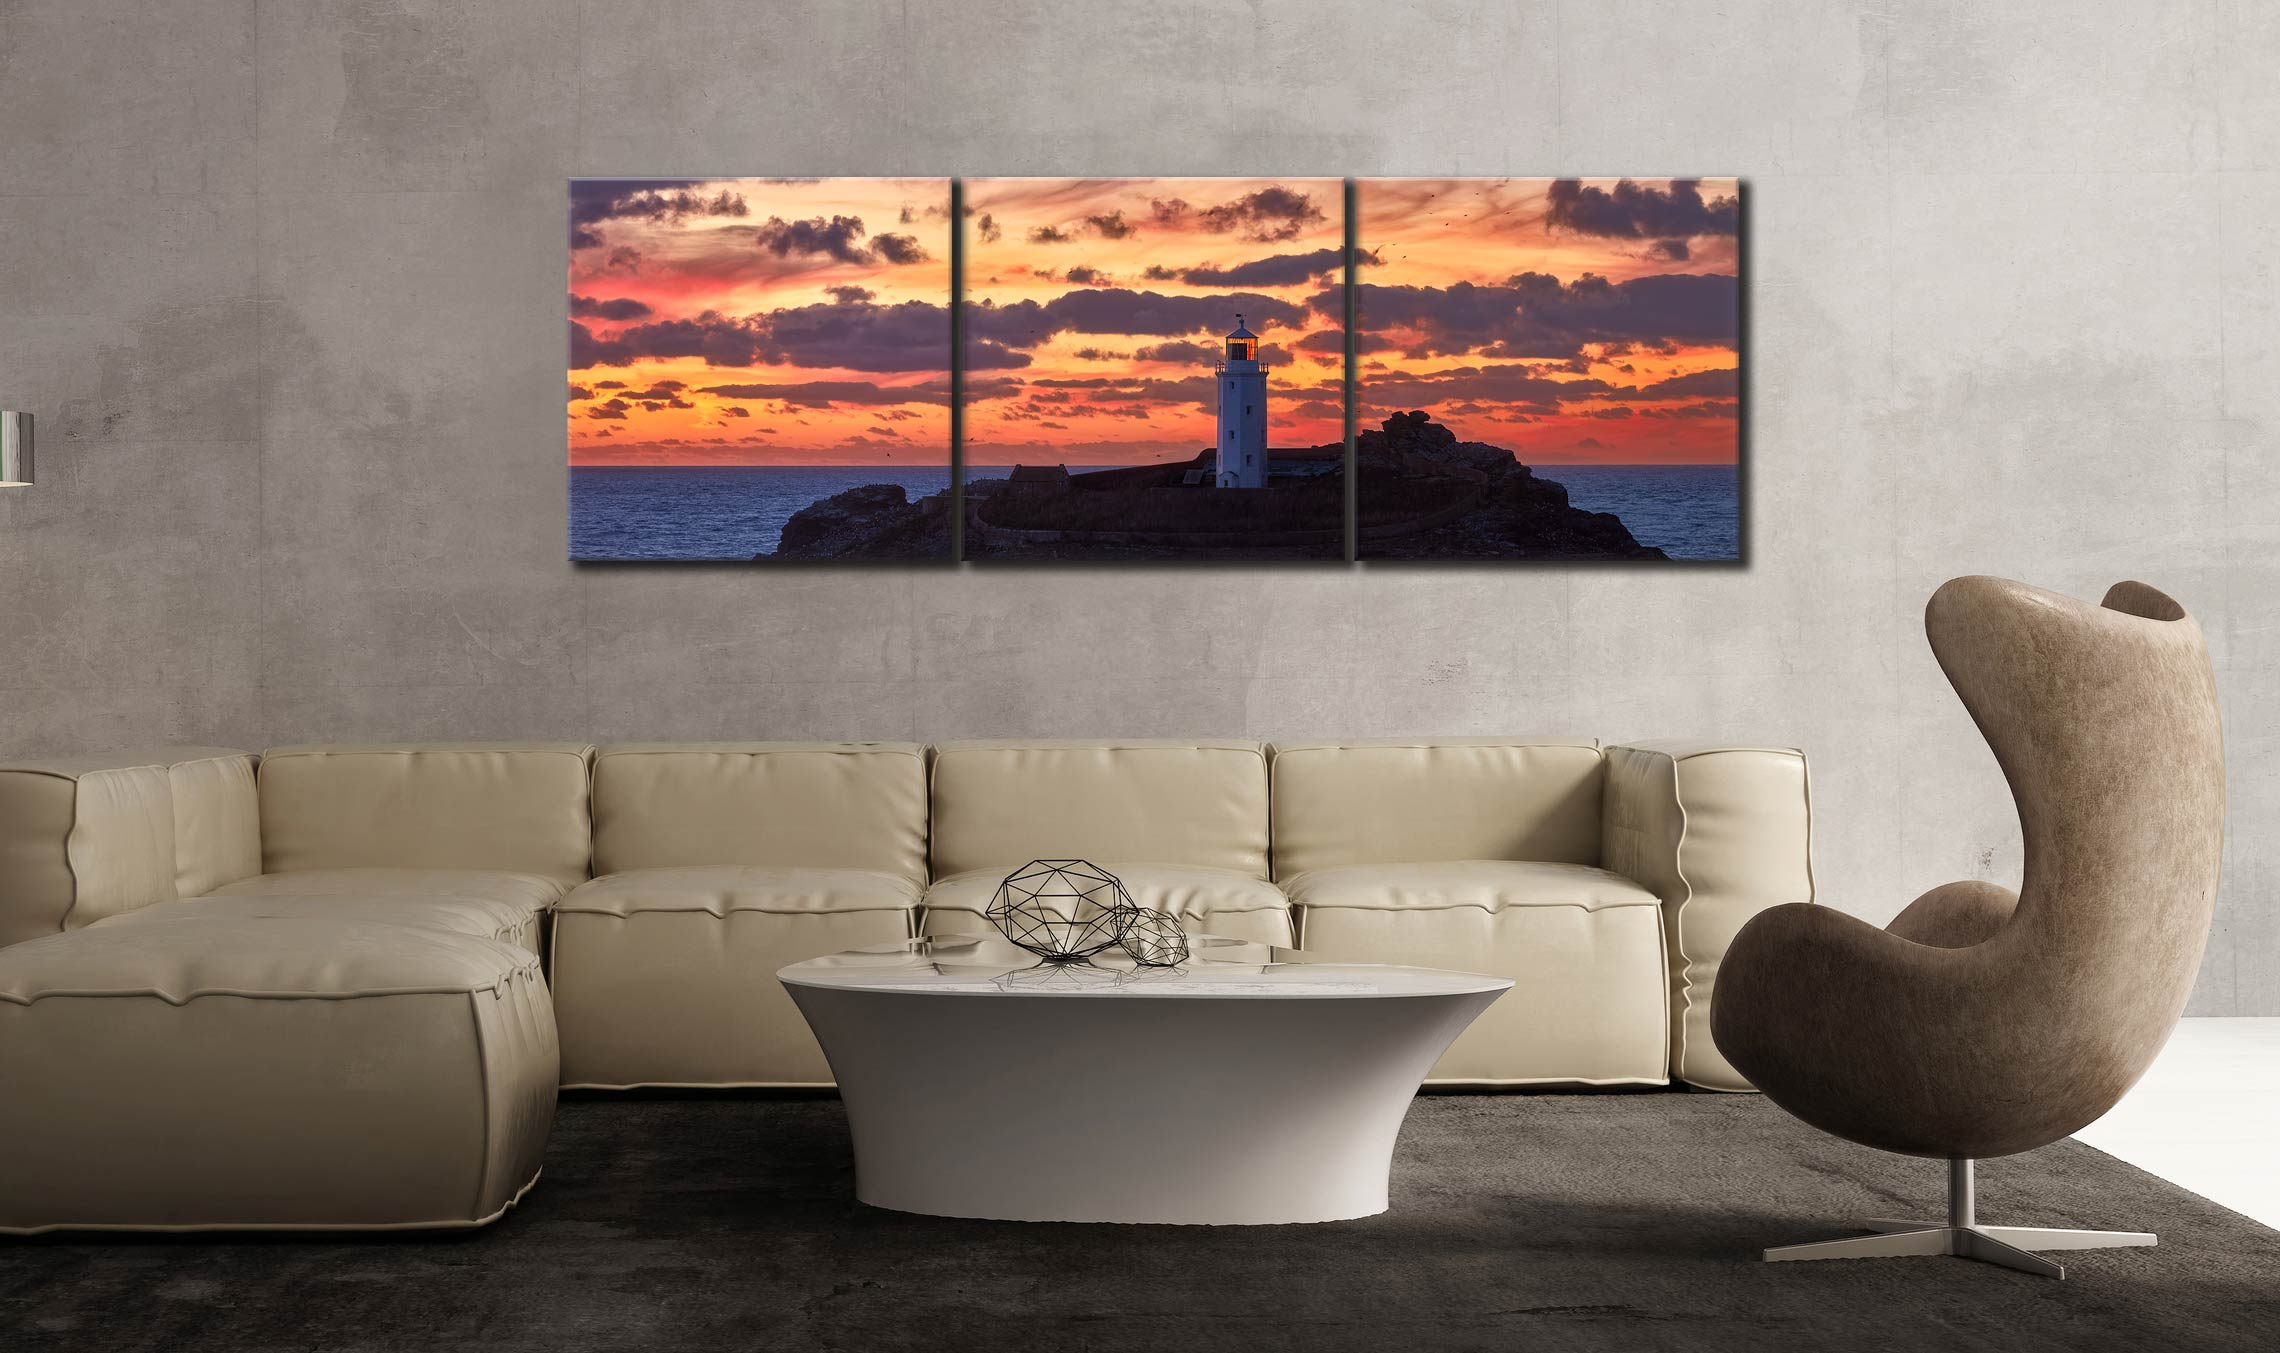 Painted Skies of Dusk at Godrevy - 3 Panel Canvas on Wall